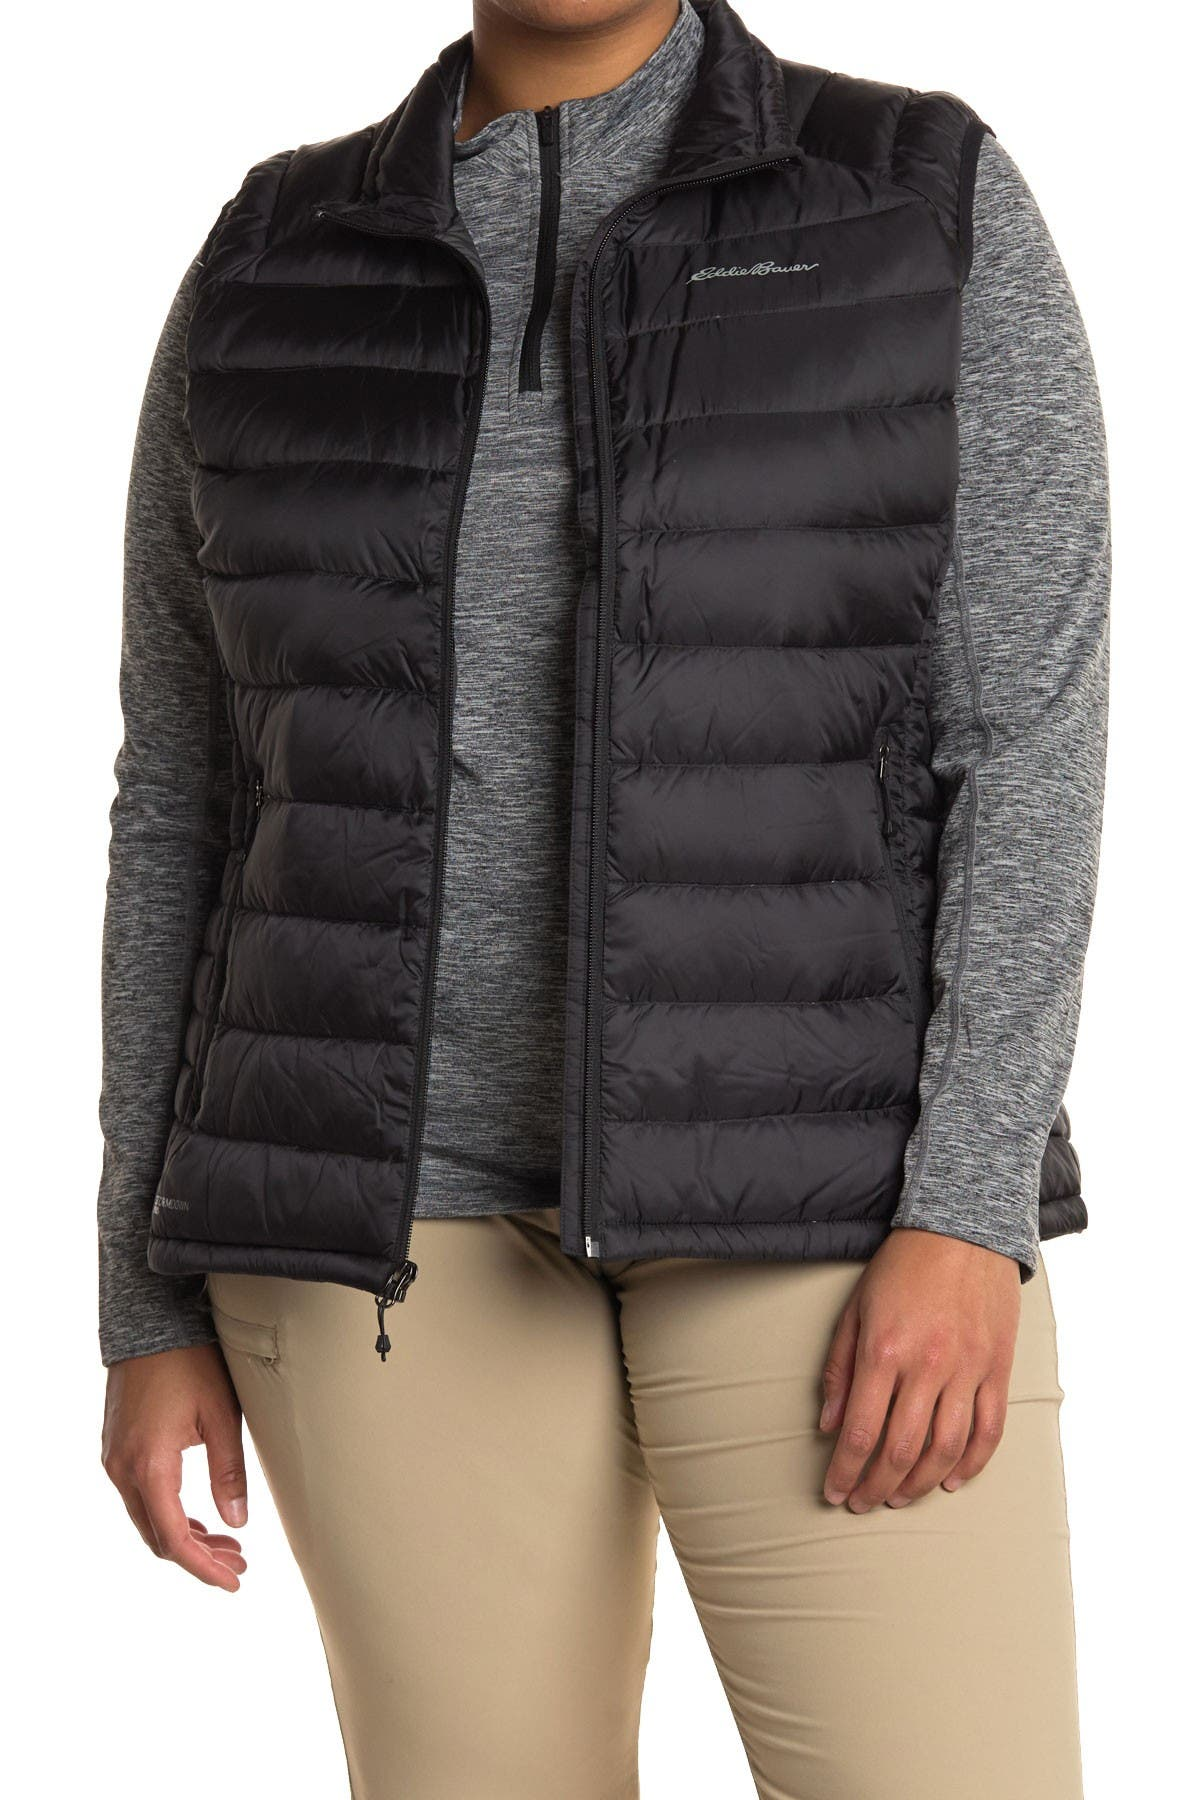 Image of Eddie Bauer Downlight Puffer Vest